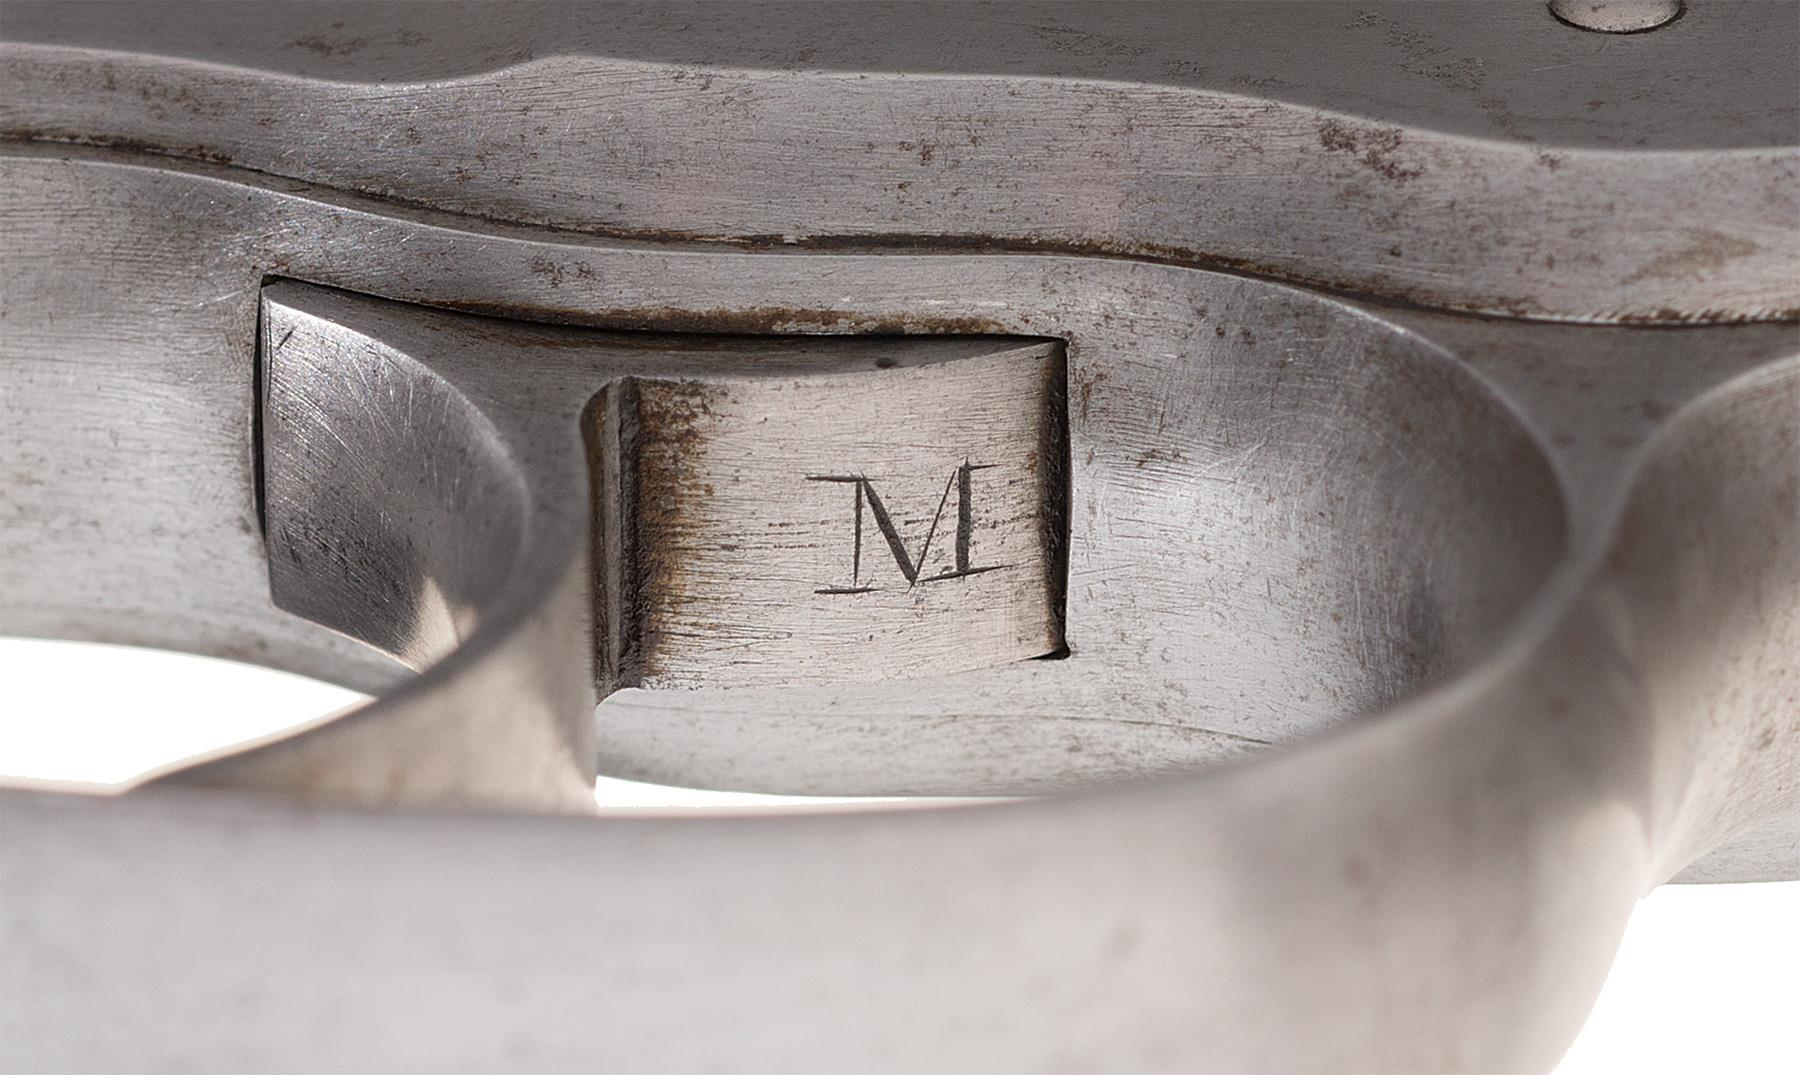 "The mystery ""M"" engraved under the trigger may be William Mason's mark."